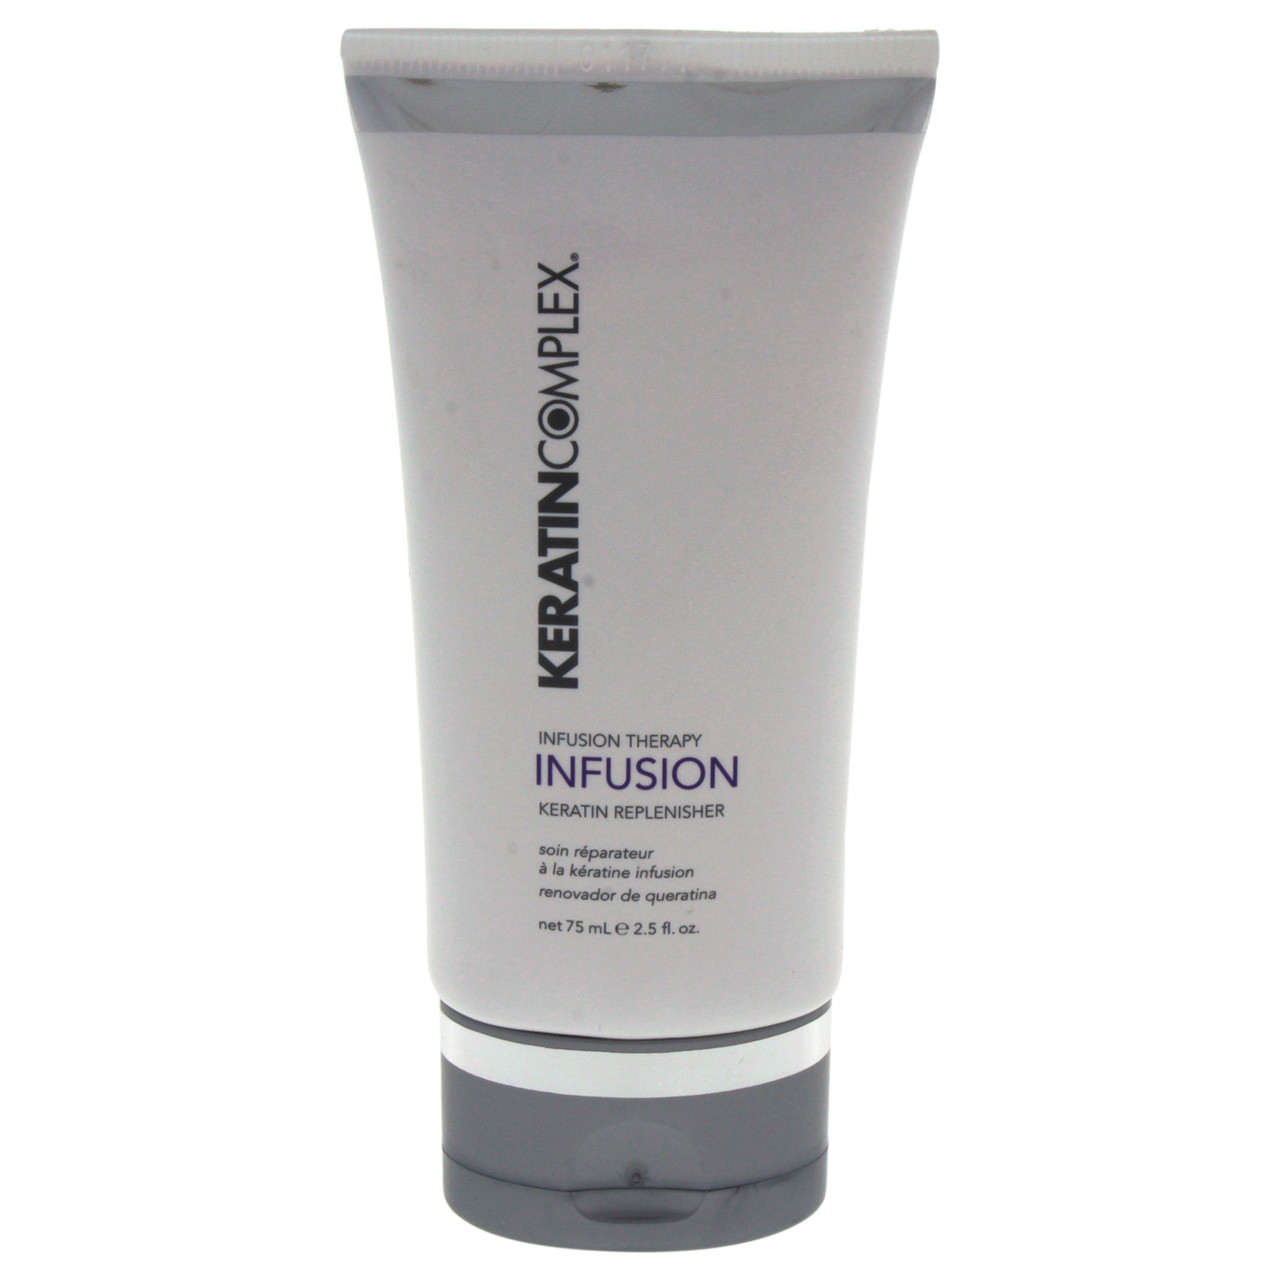 Keratin Complex Infusion Therapy Infusion Keratin Replenisher 2.5 Oz